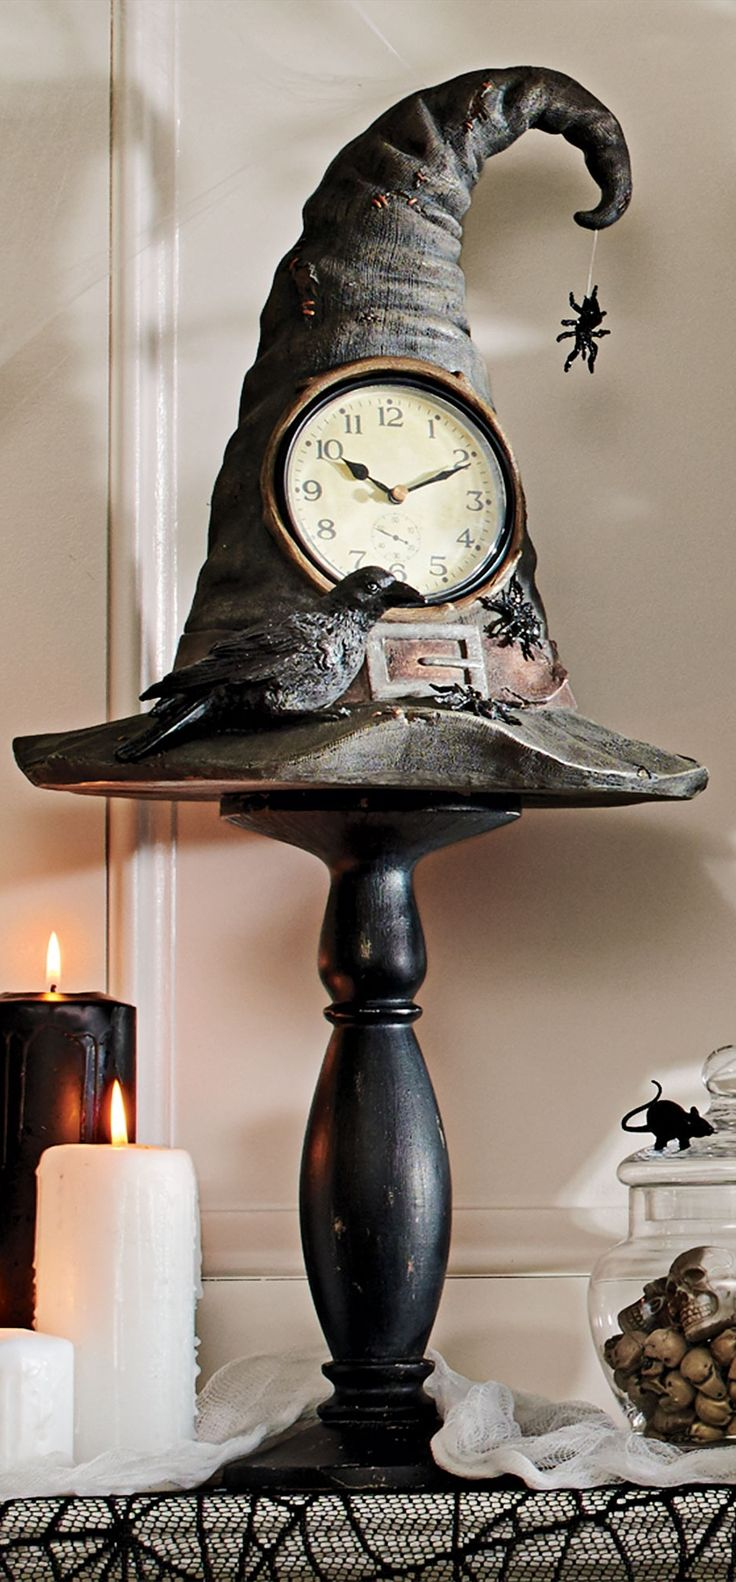 Know the exact moment the eye of newt has simmered to perfection, or count down the minutes to the witching hour with our imaginative Witch Hat Pedestal.